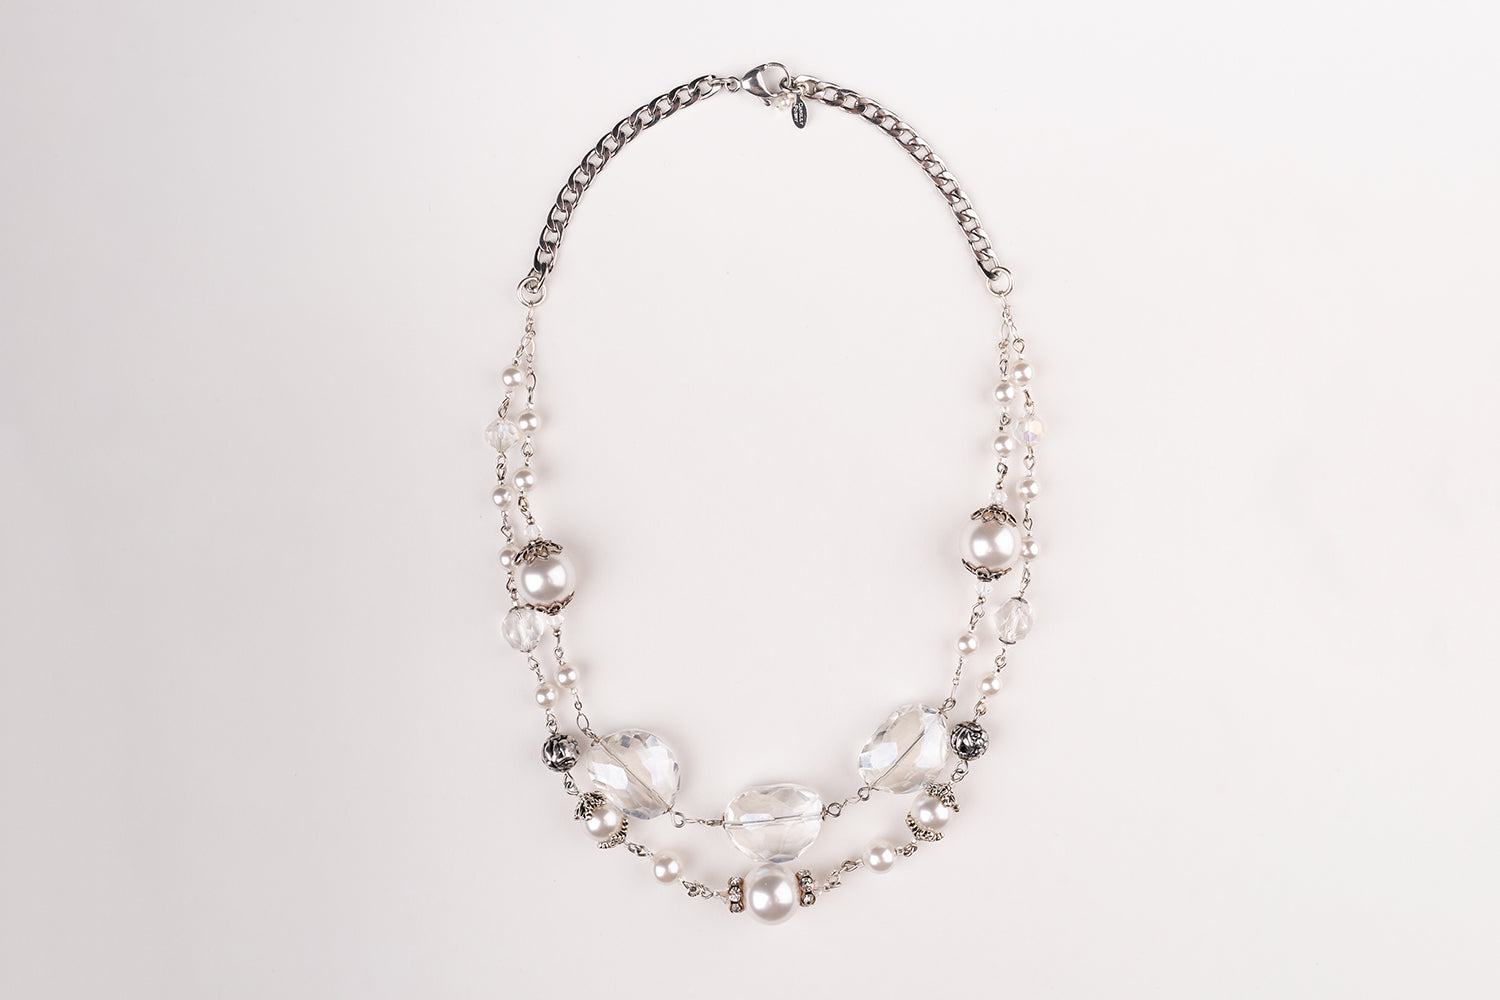 A Carolily Finery statement necklace made from sterling silver, large faceted crystal and Swarovski crystal pearl hanging in front of a white backdrop